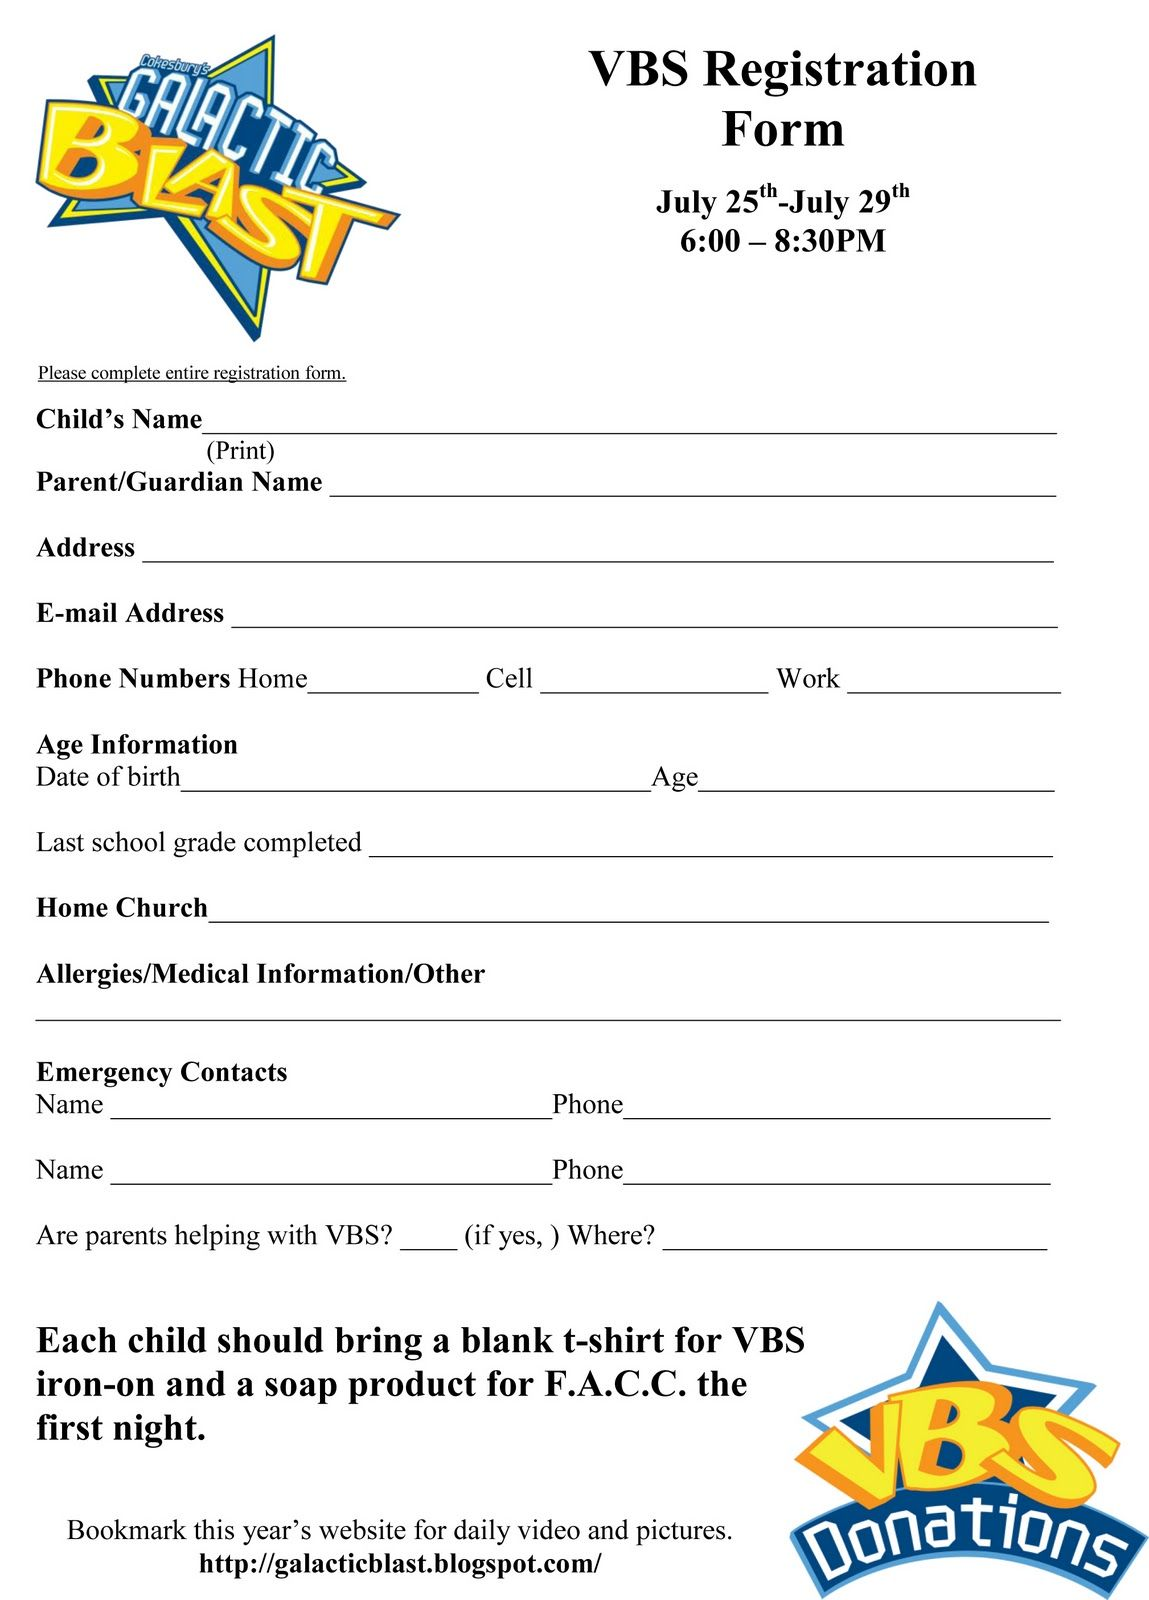 Free VBS Registration Form Template VBS Pinterest – New Customer Registration Form Template